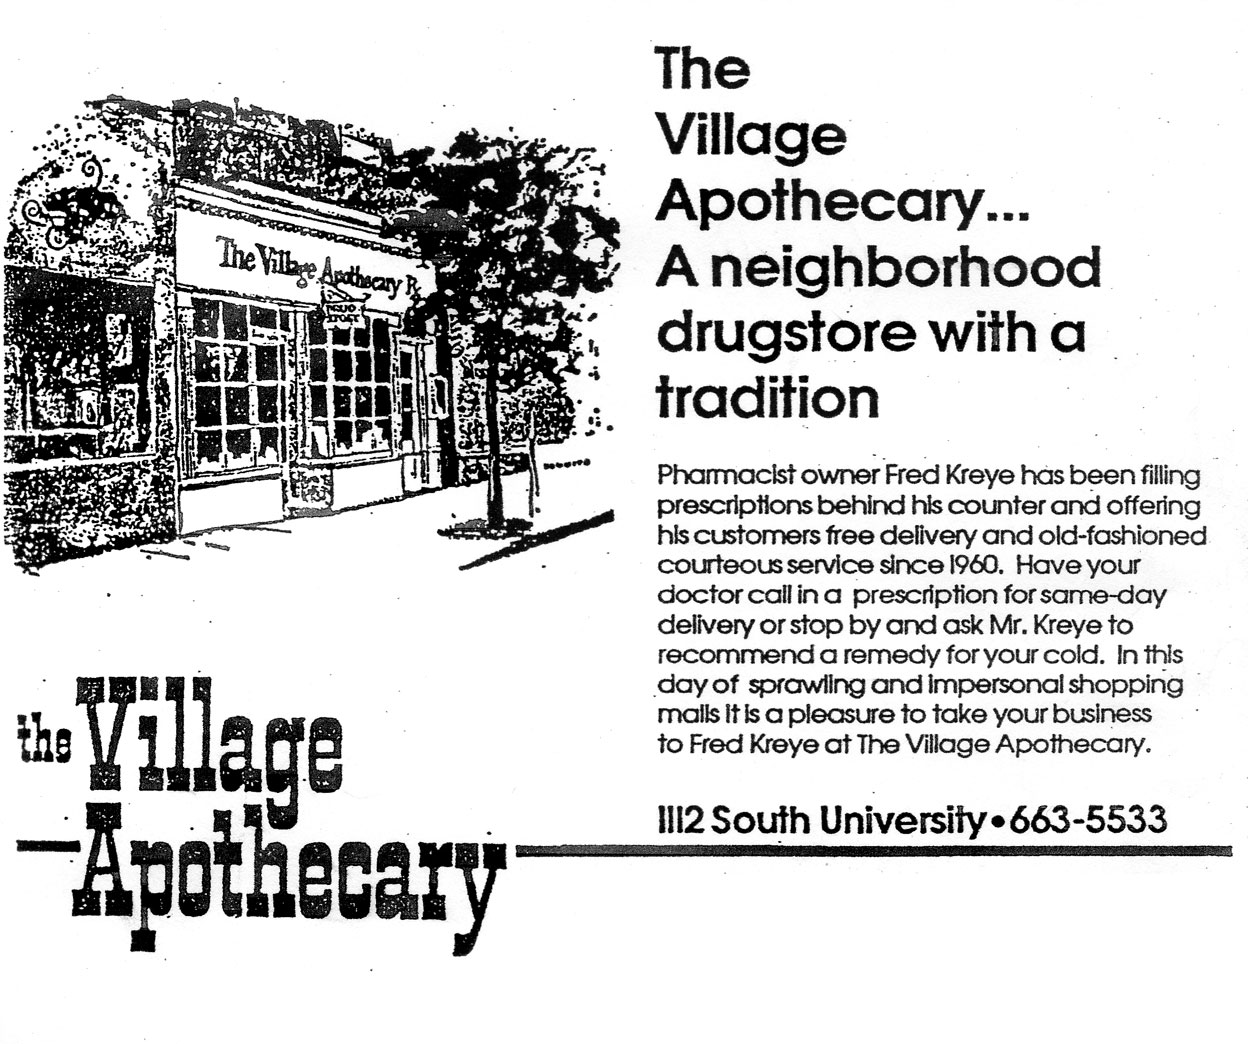 The Village Apothecary advertisement image